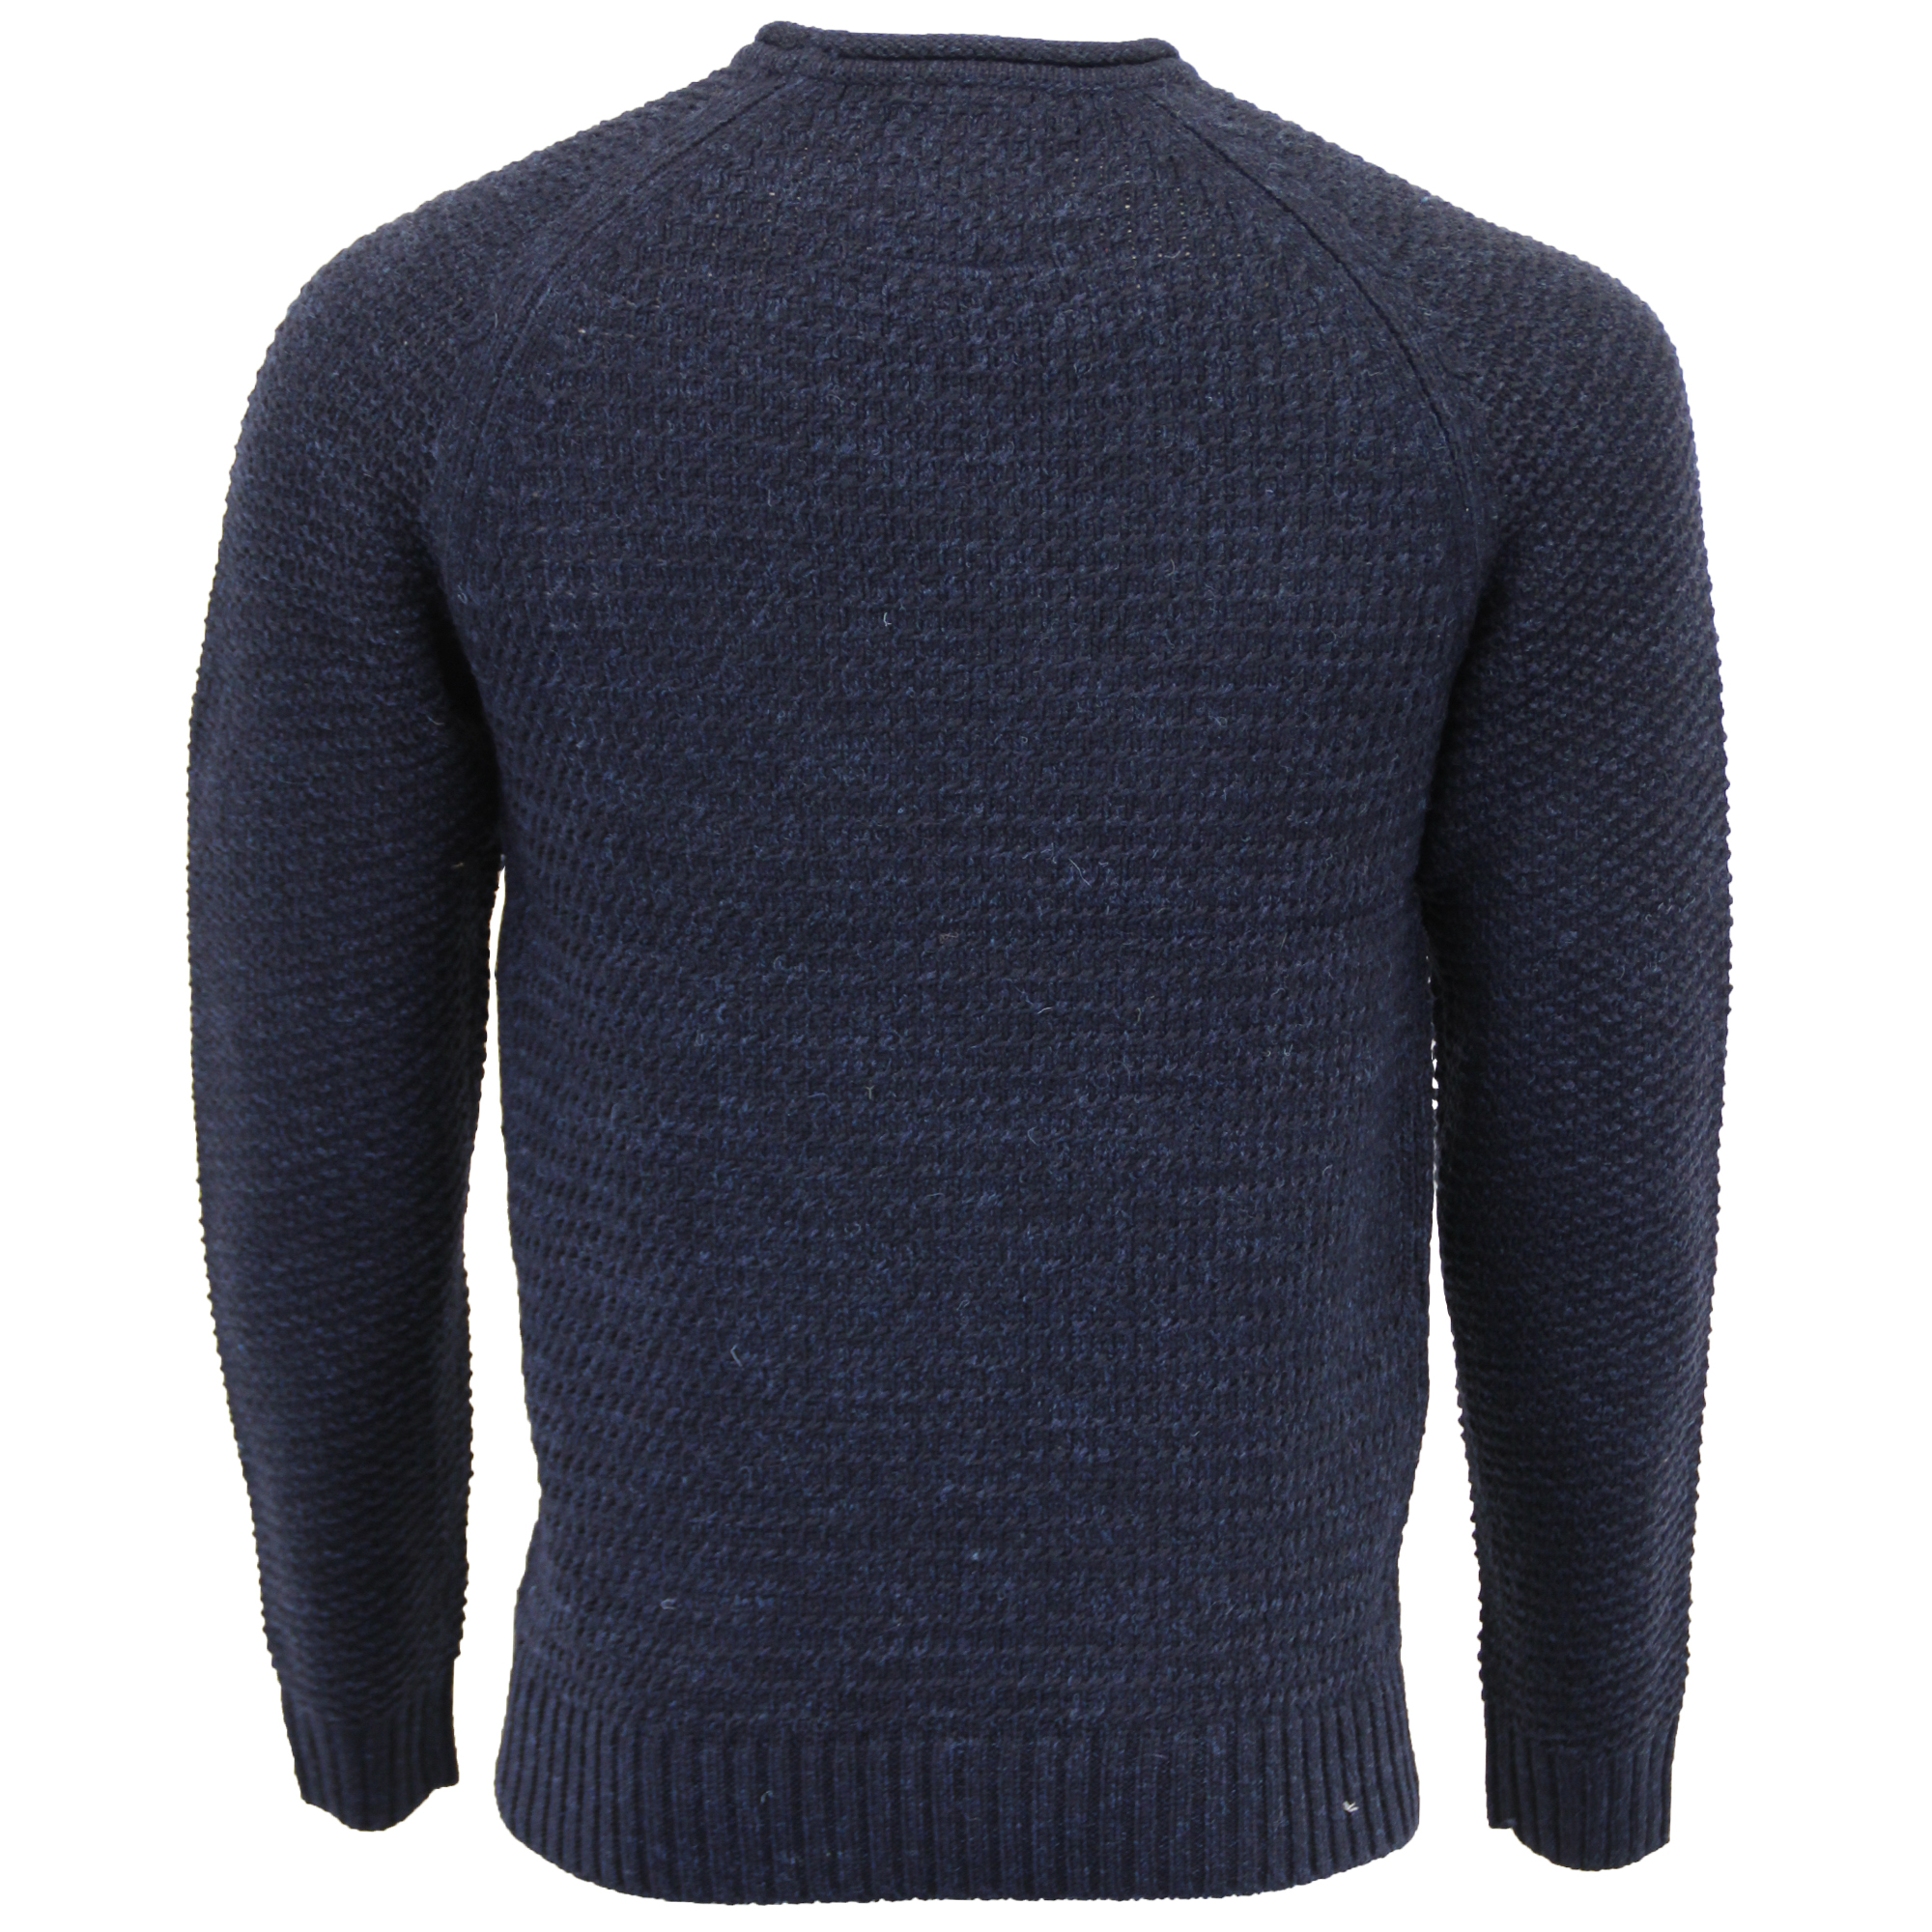 Mens-Wool-Mix-Jumper-Threadbare-Cable-Knitted-Sweater-Pullover-Top-Casual-Winter thumbnail 6